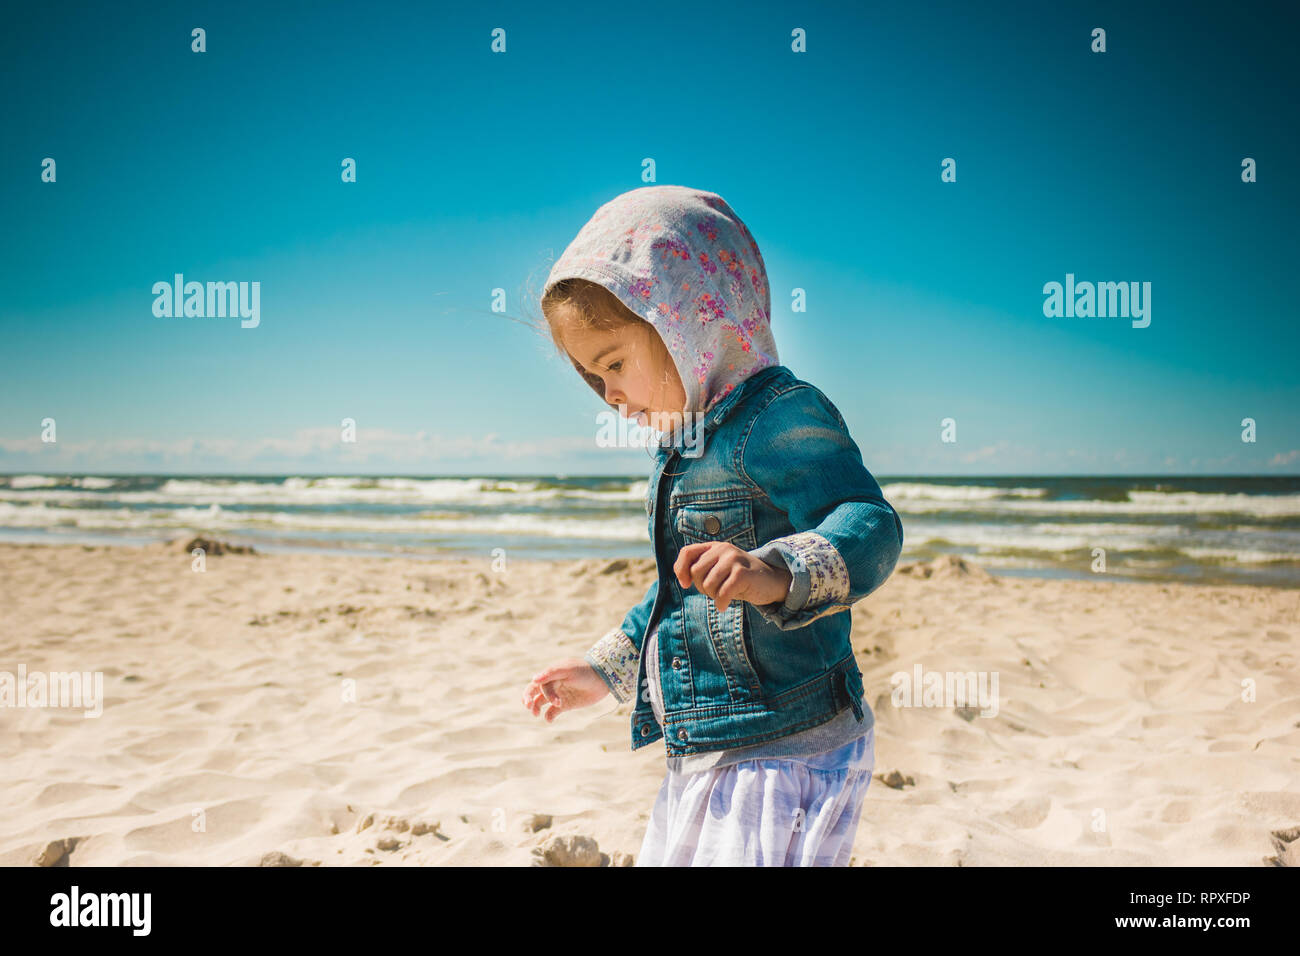 e207fae8ef6 cute little girl standing on the beach on vacation Stock Photo ...